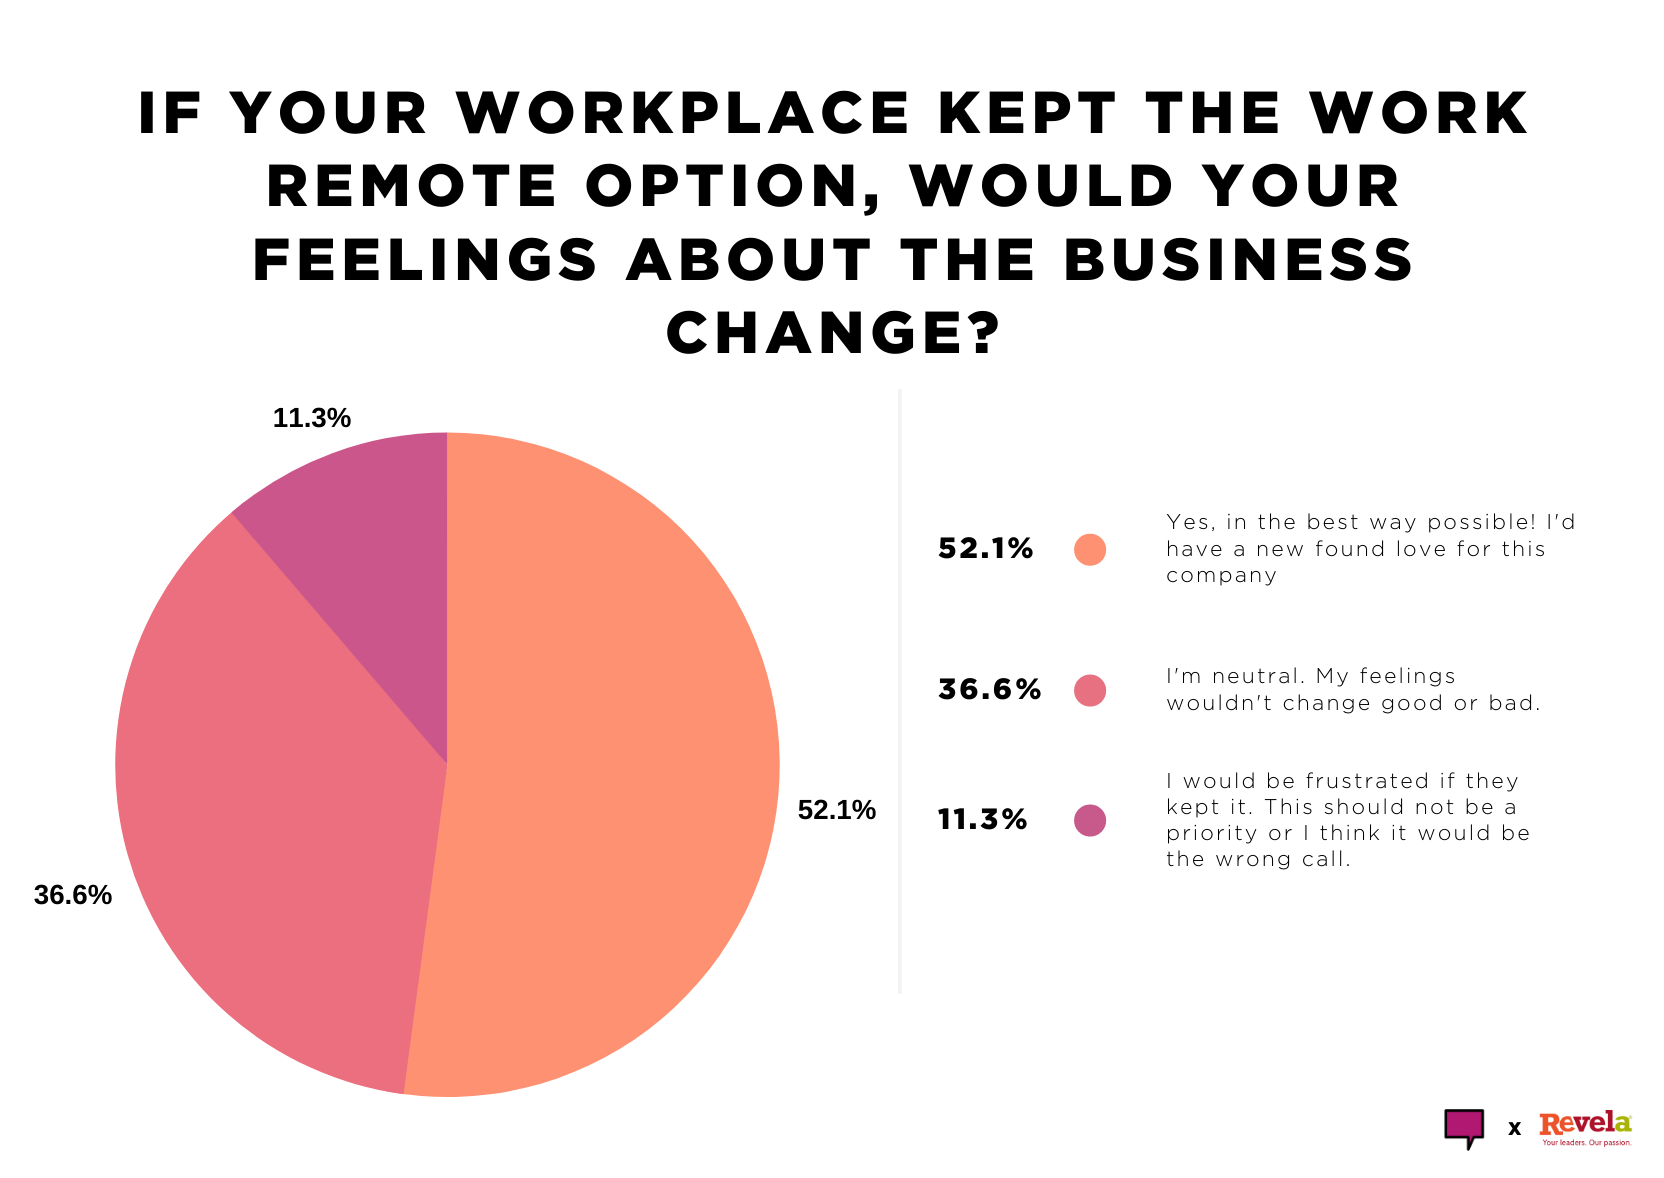 If your workplace kept the work remote option, would your feelings about the business change?